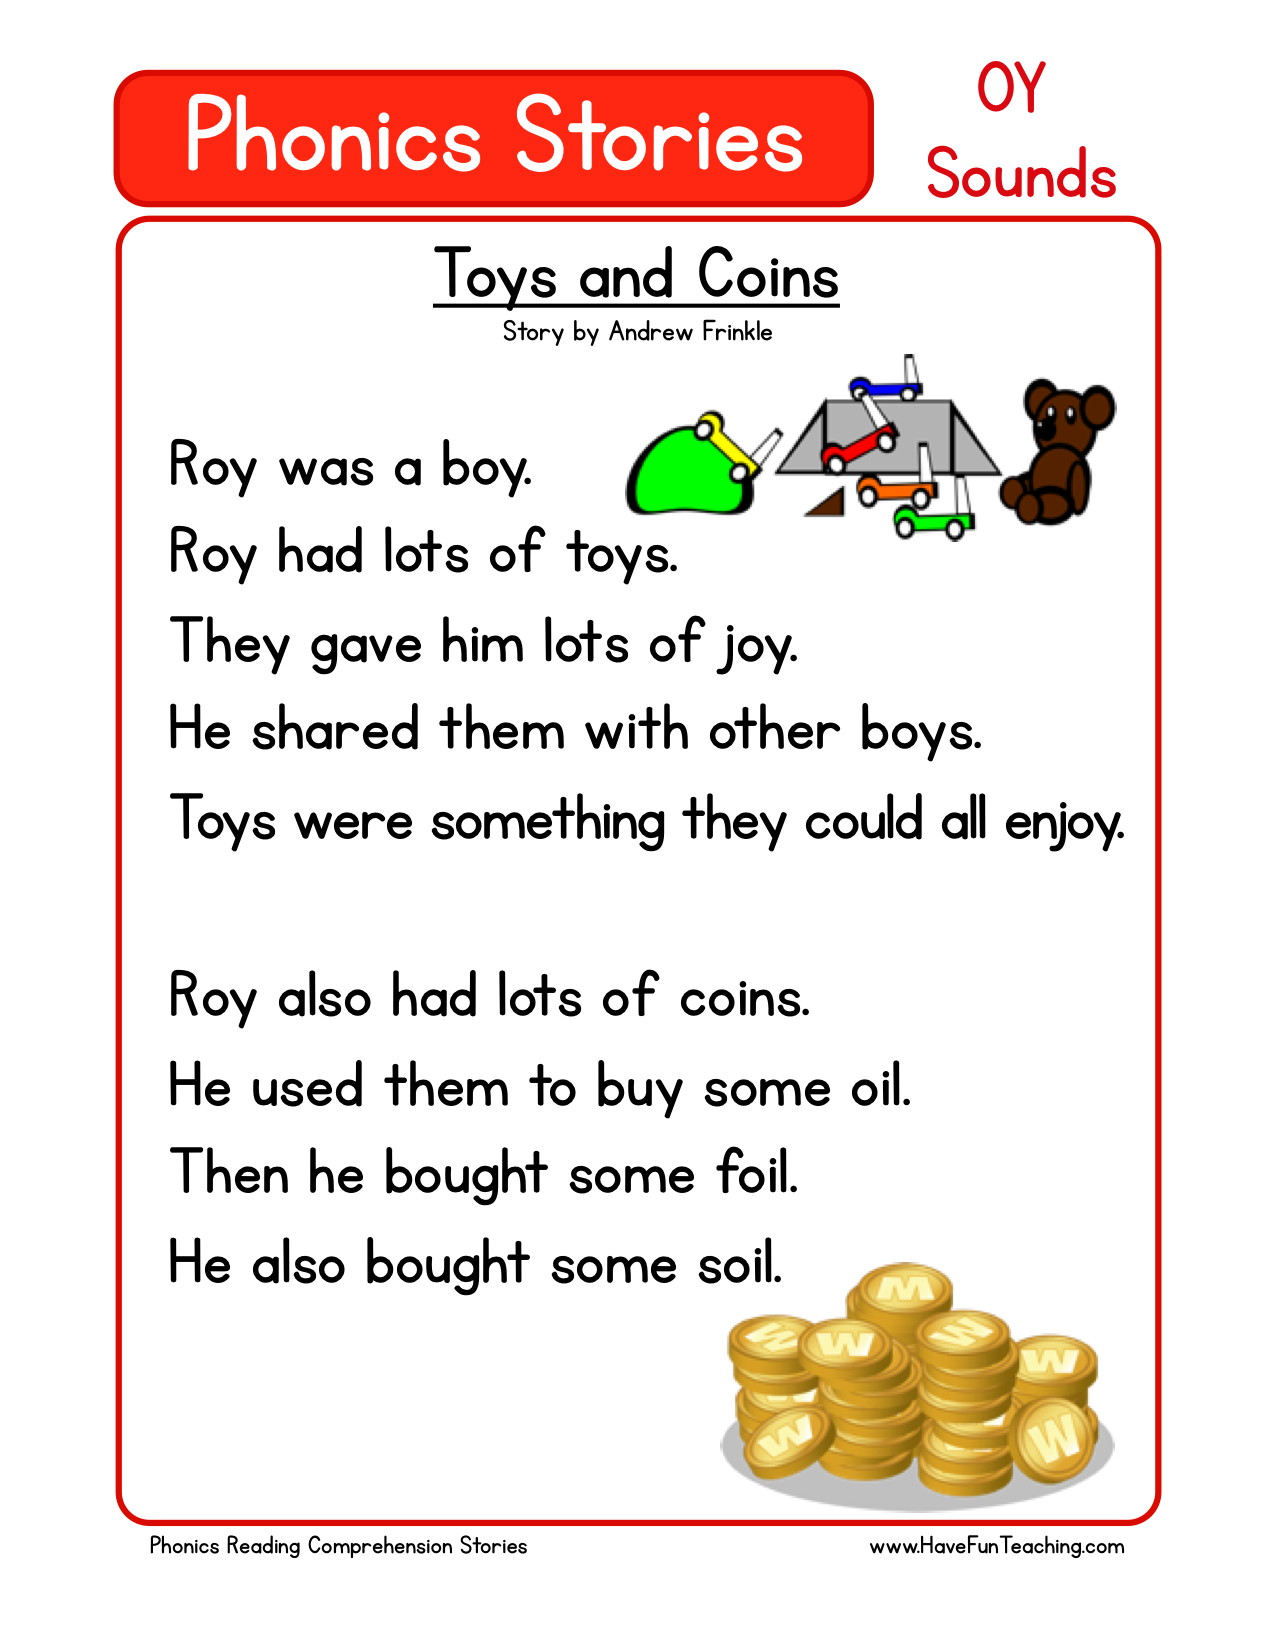 Toys and Coins